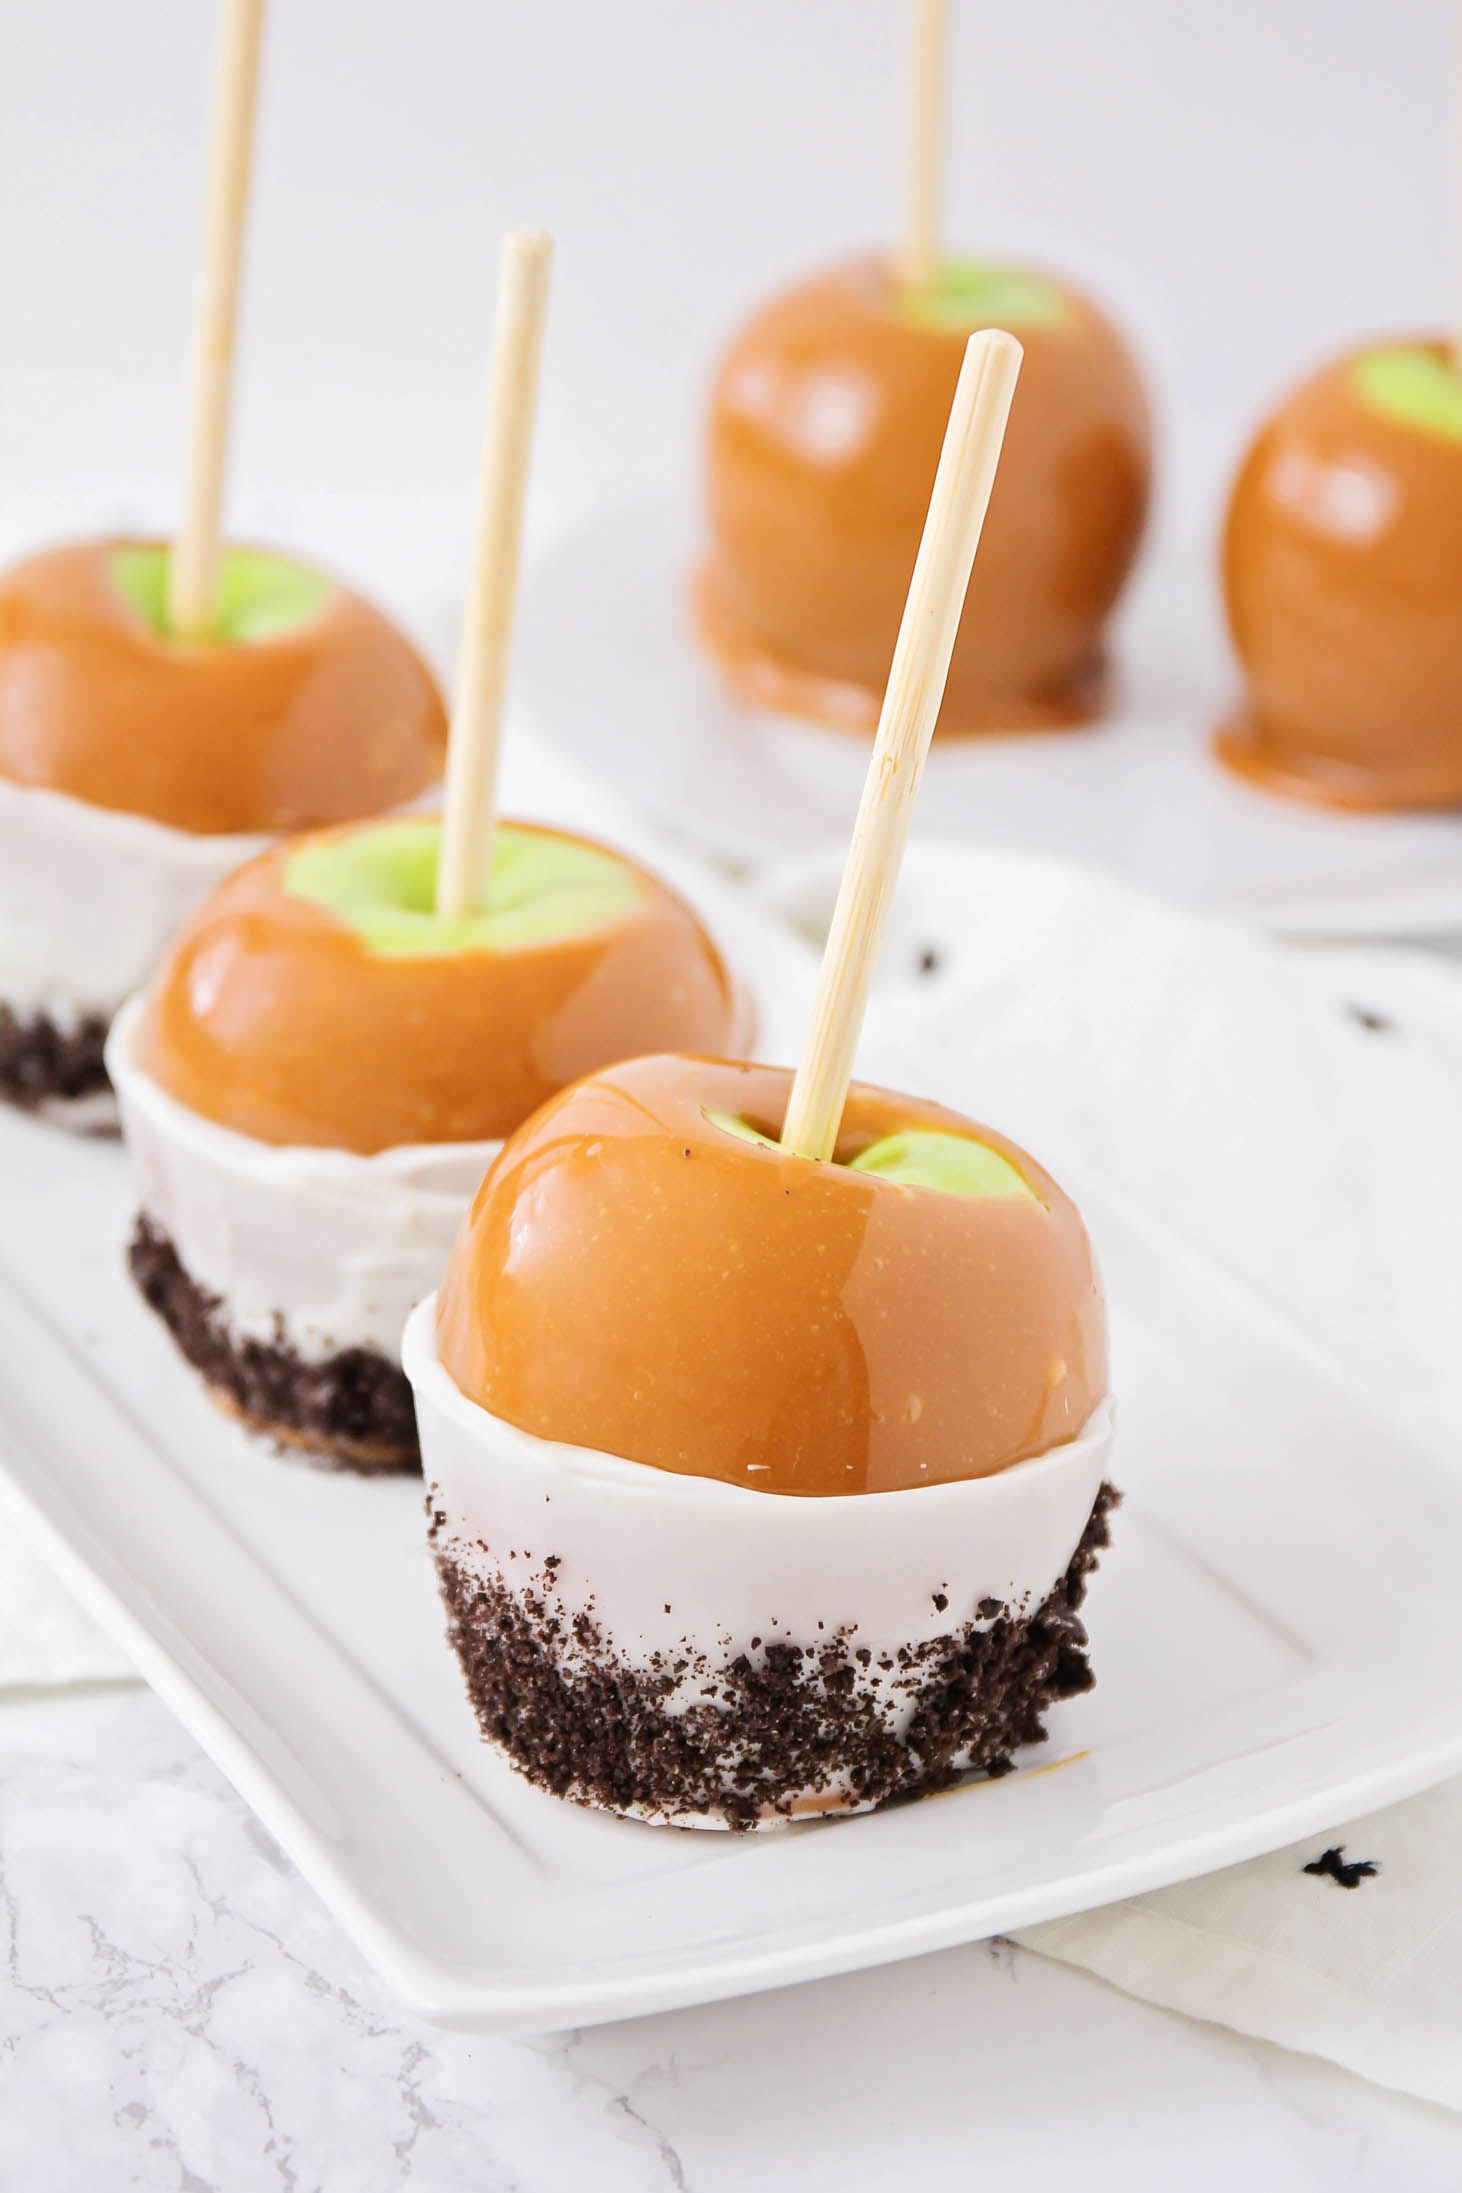 Gourmet Caramel apples on white tray